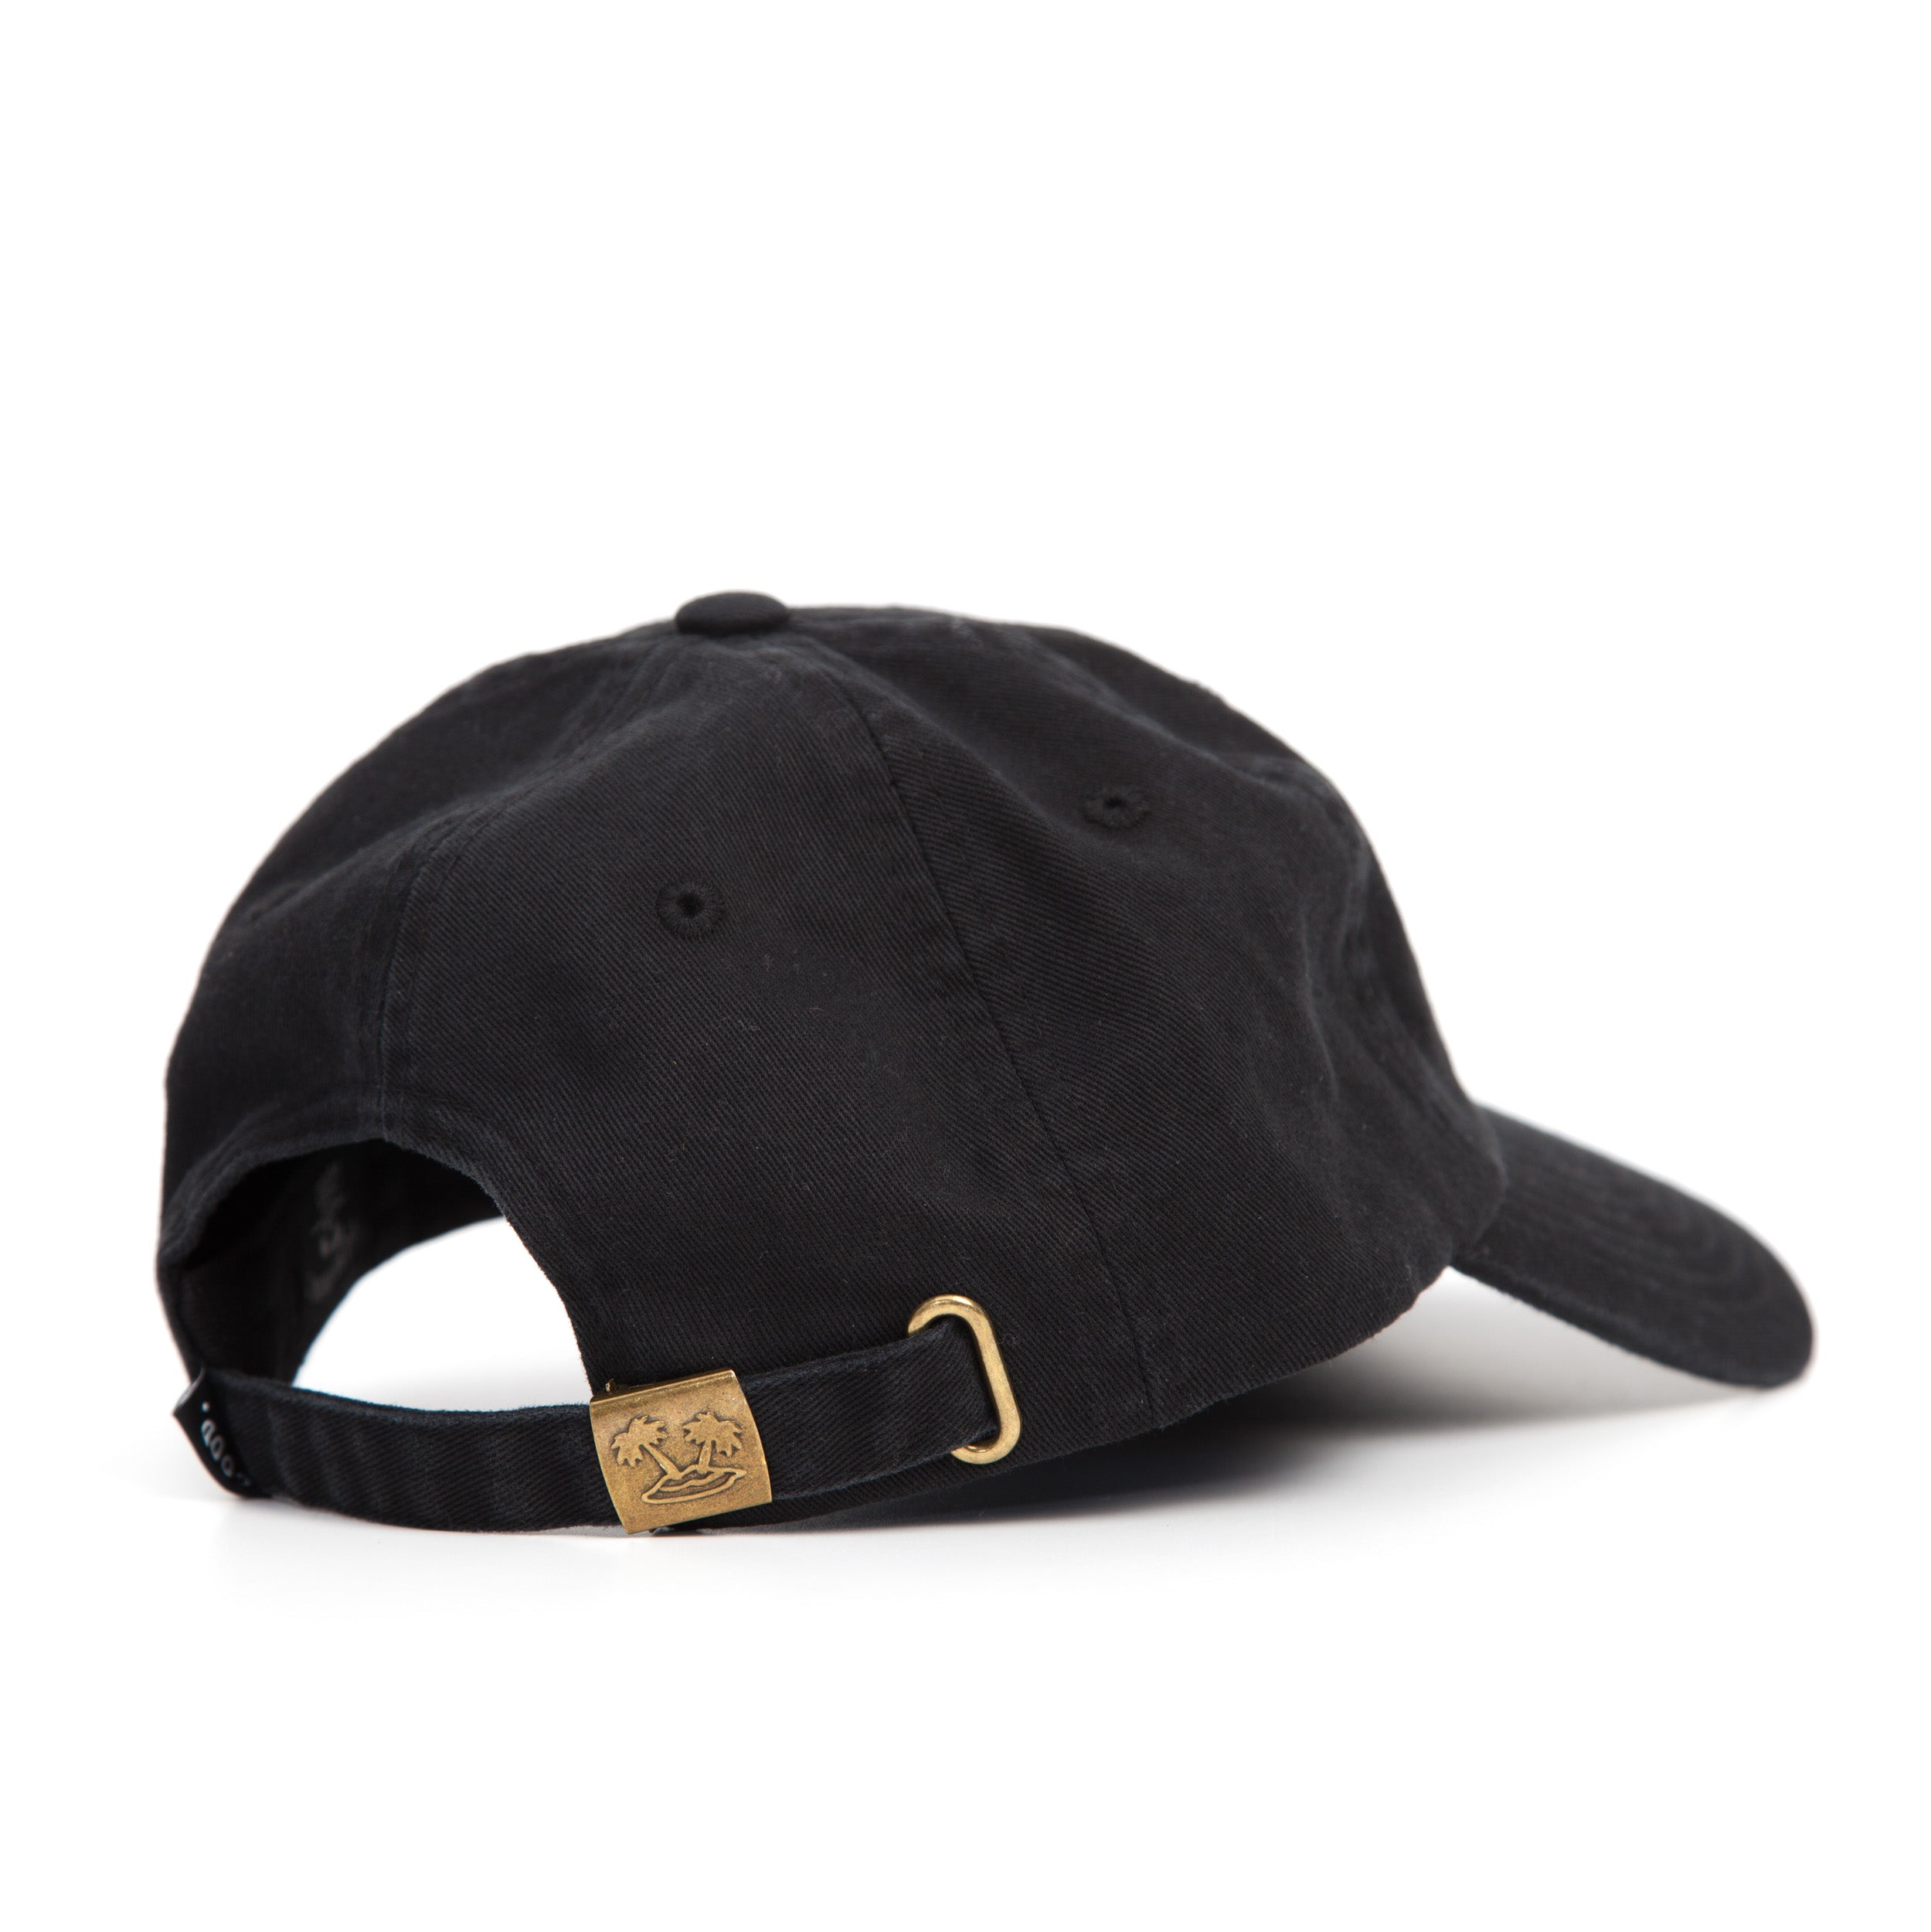 everythings good clothing co black dad cap everythings good